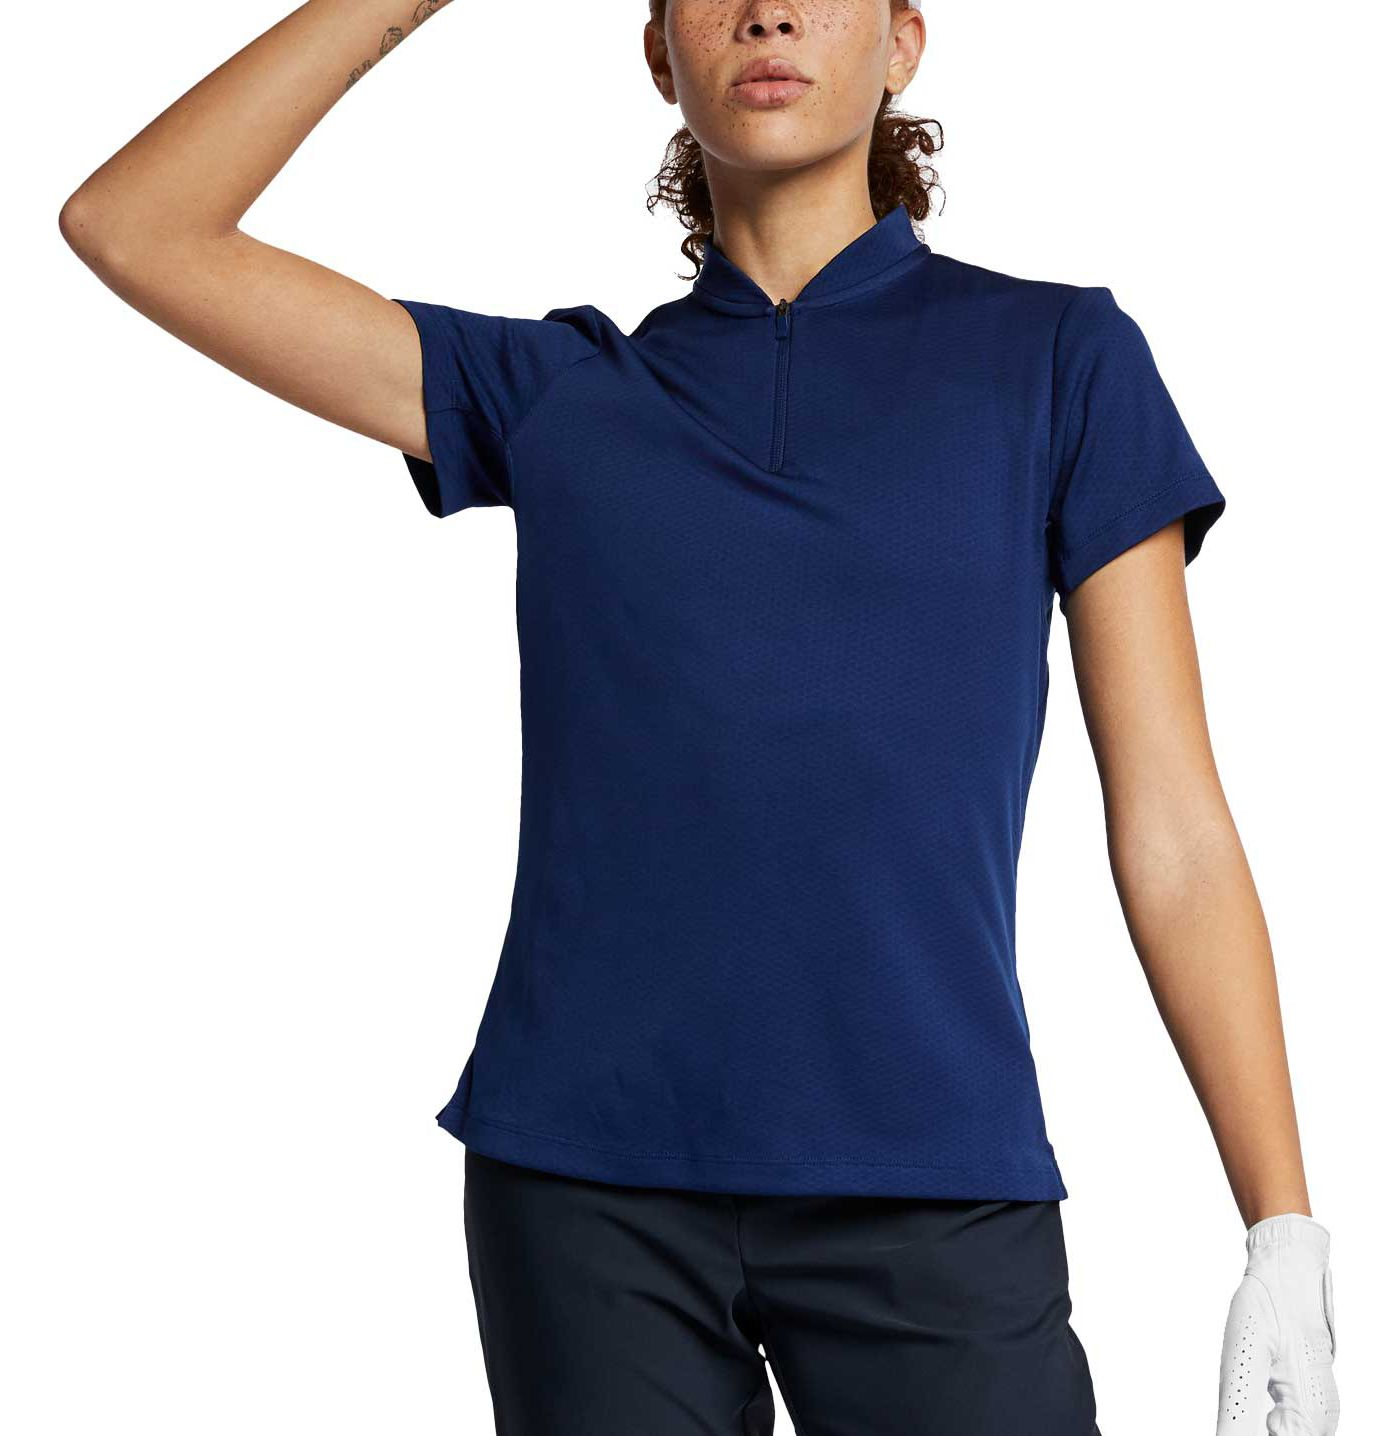 Nike Women's Dri-FIT Blade Golf Polo